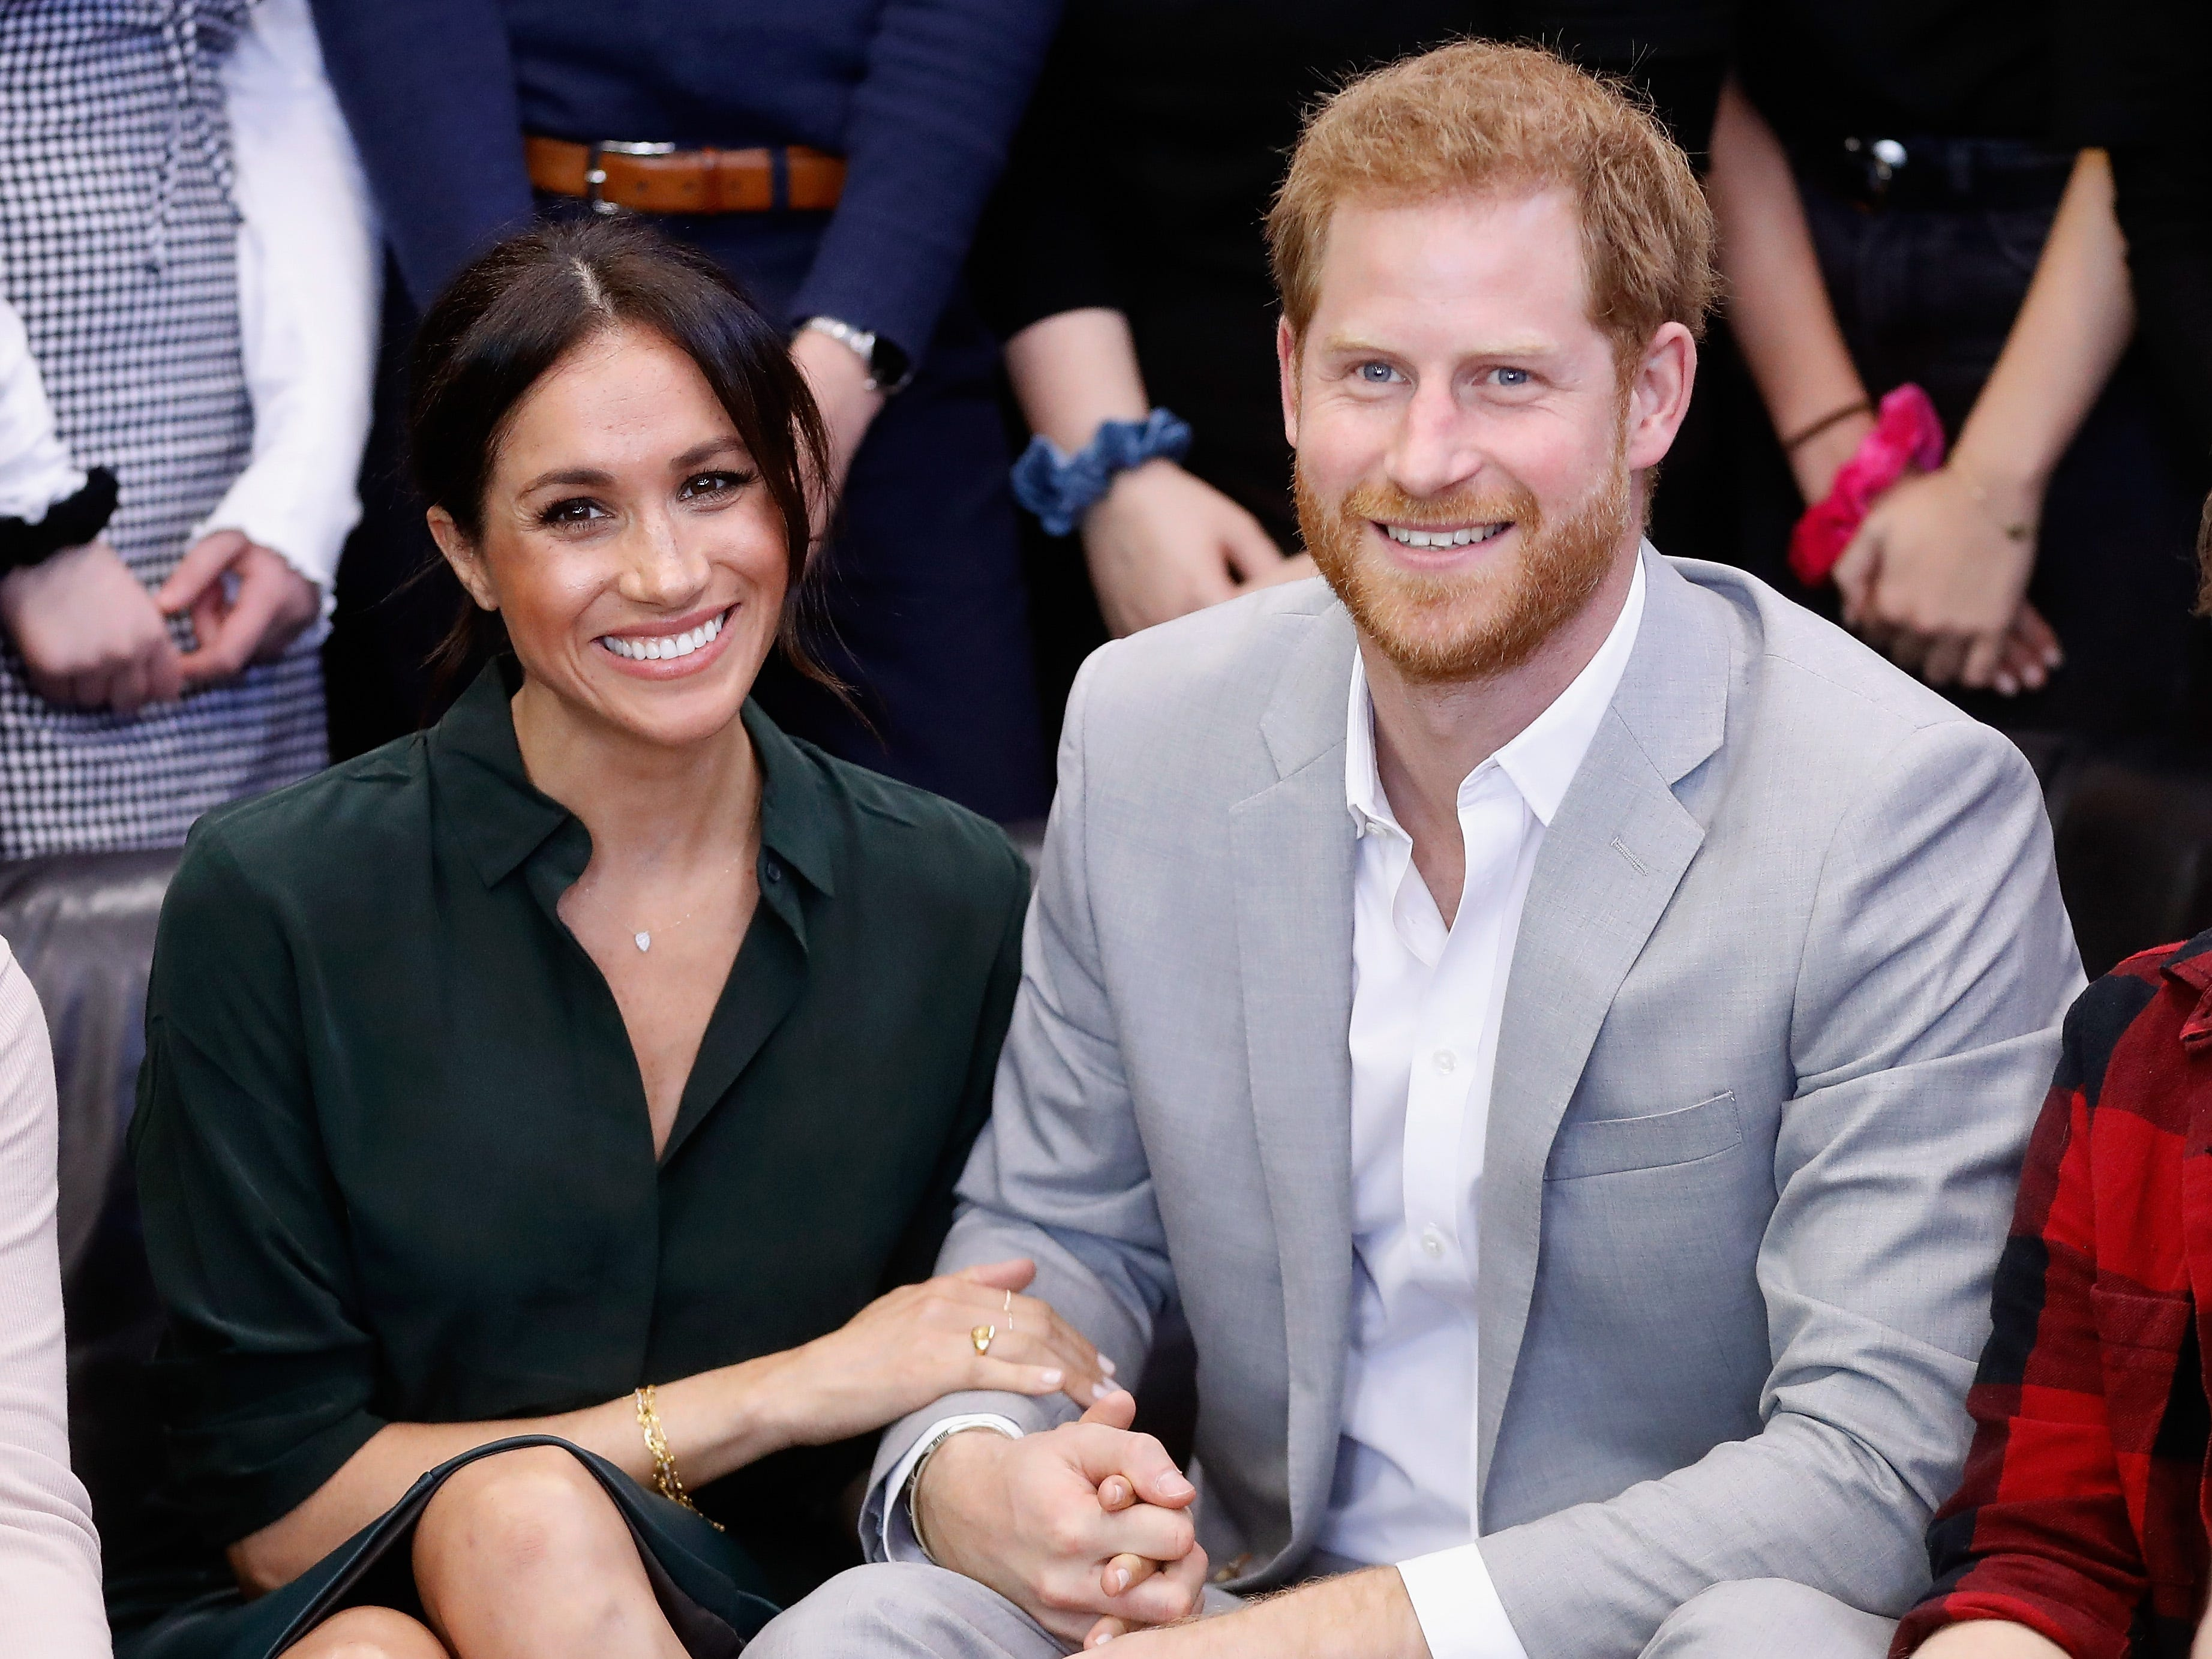 'Best news ever!': Twitter reacts to Harry and Meghan's pregnancy